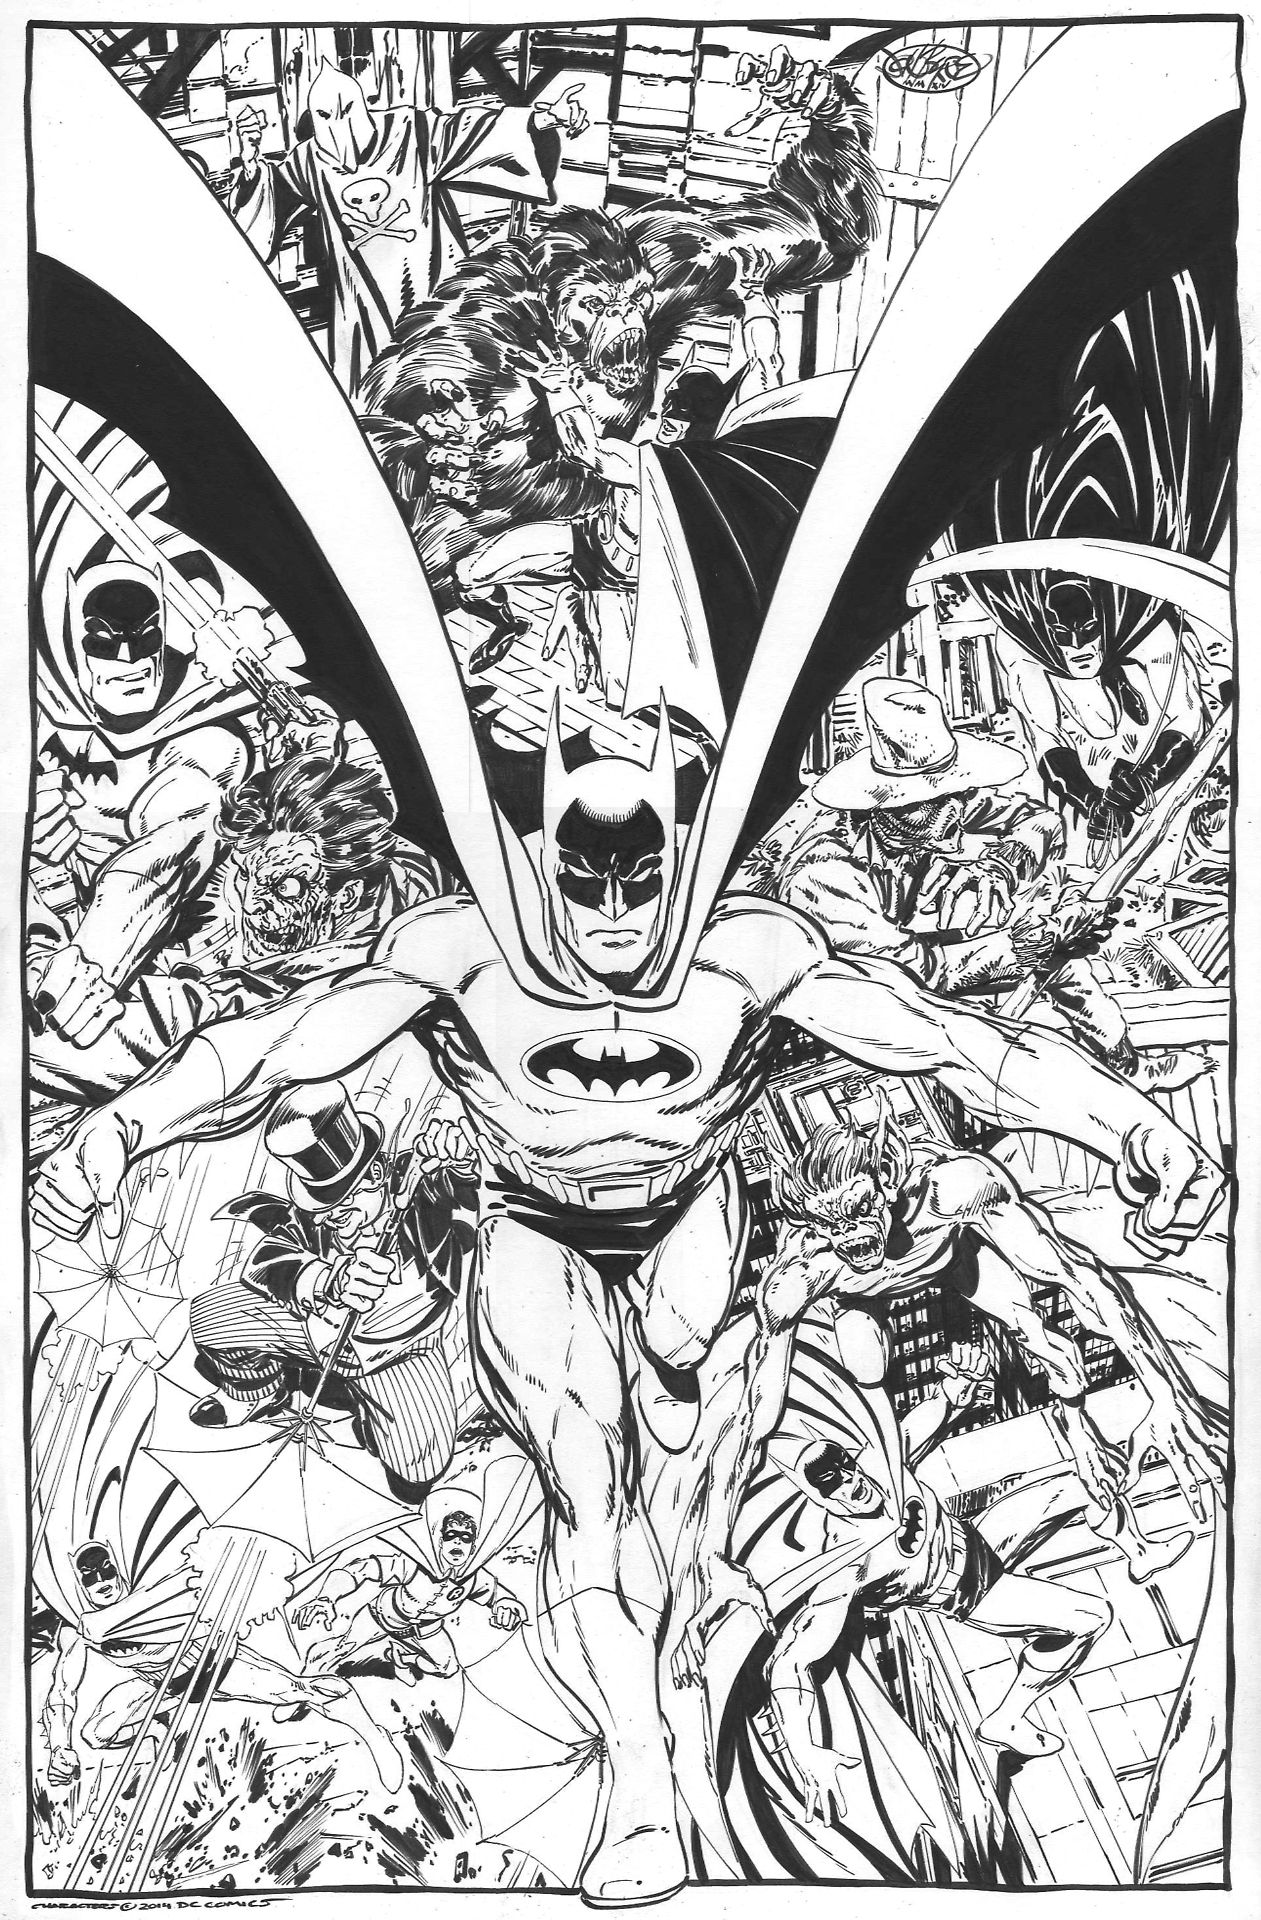 Batman montage commission by John Byrne. 2014.